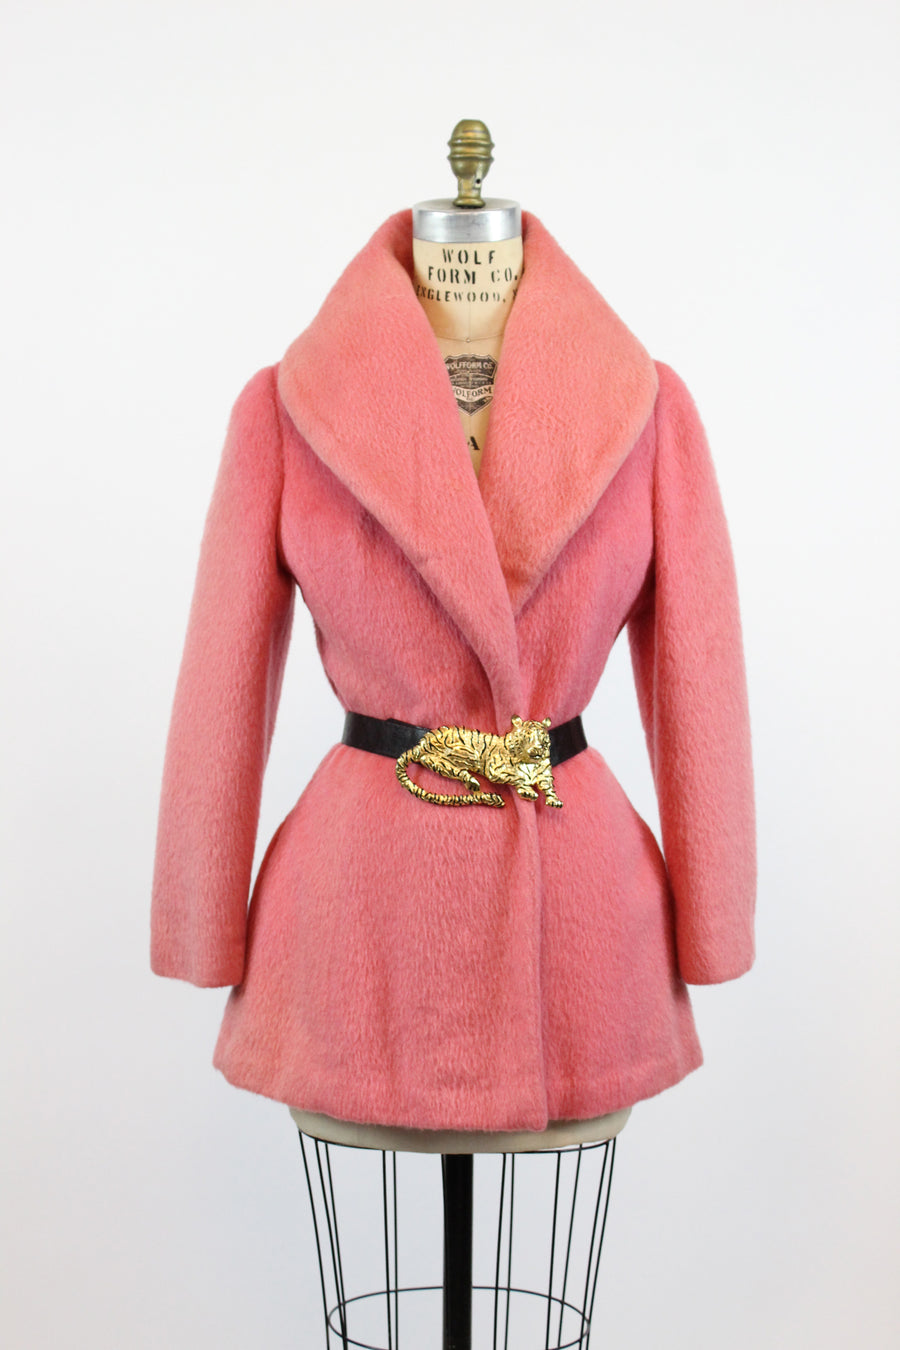 1950s Lilli Ann swing coat pink xs small | vintage jacket